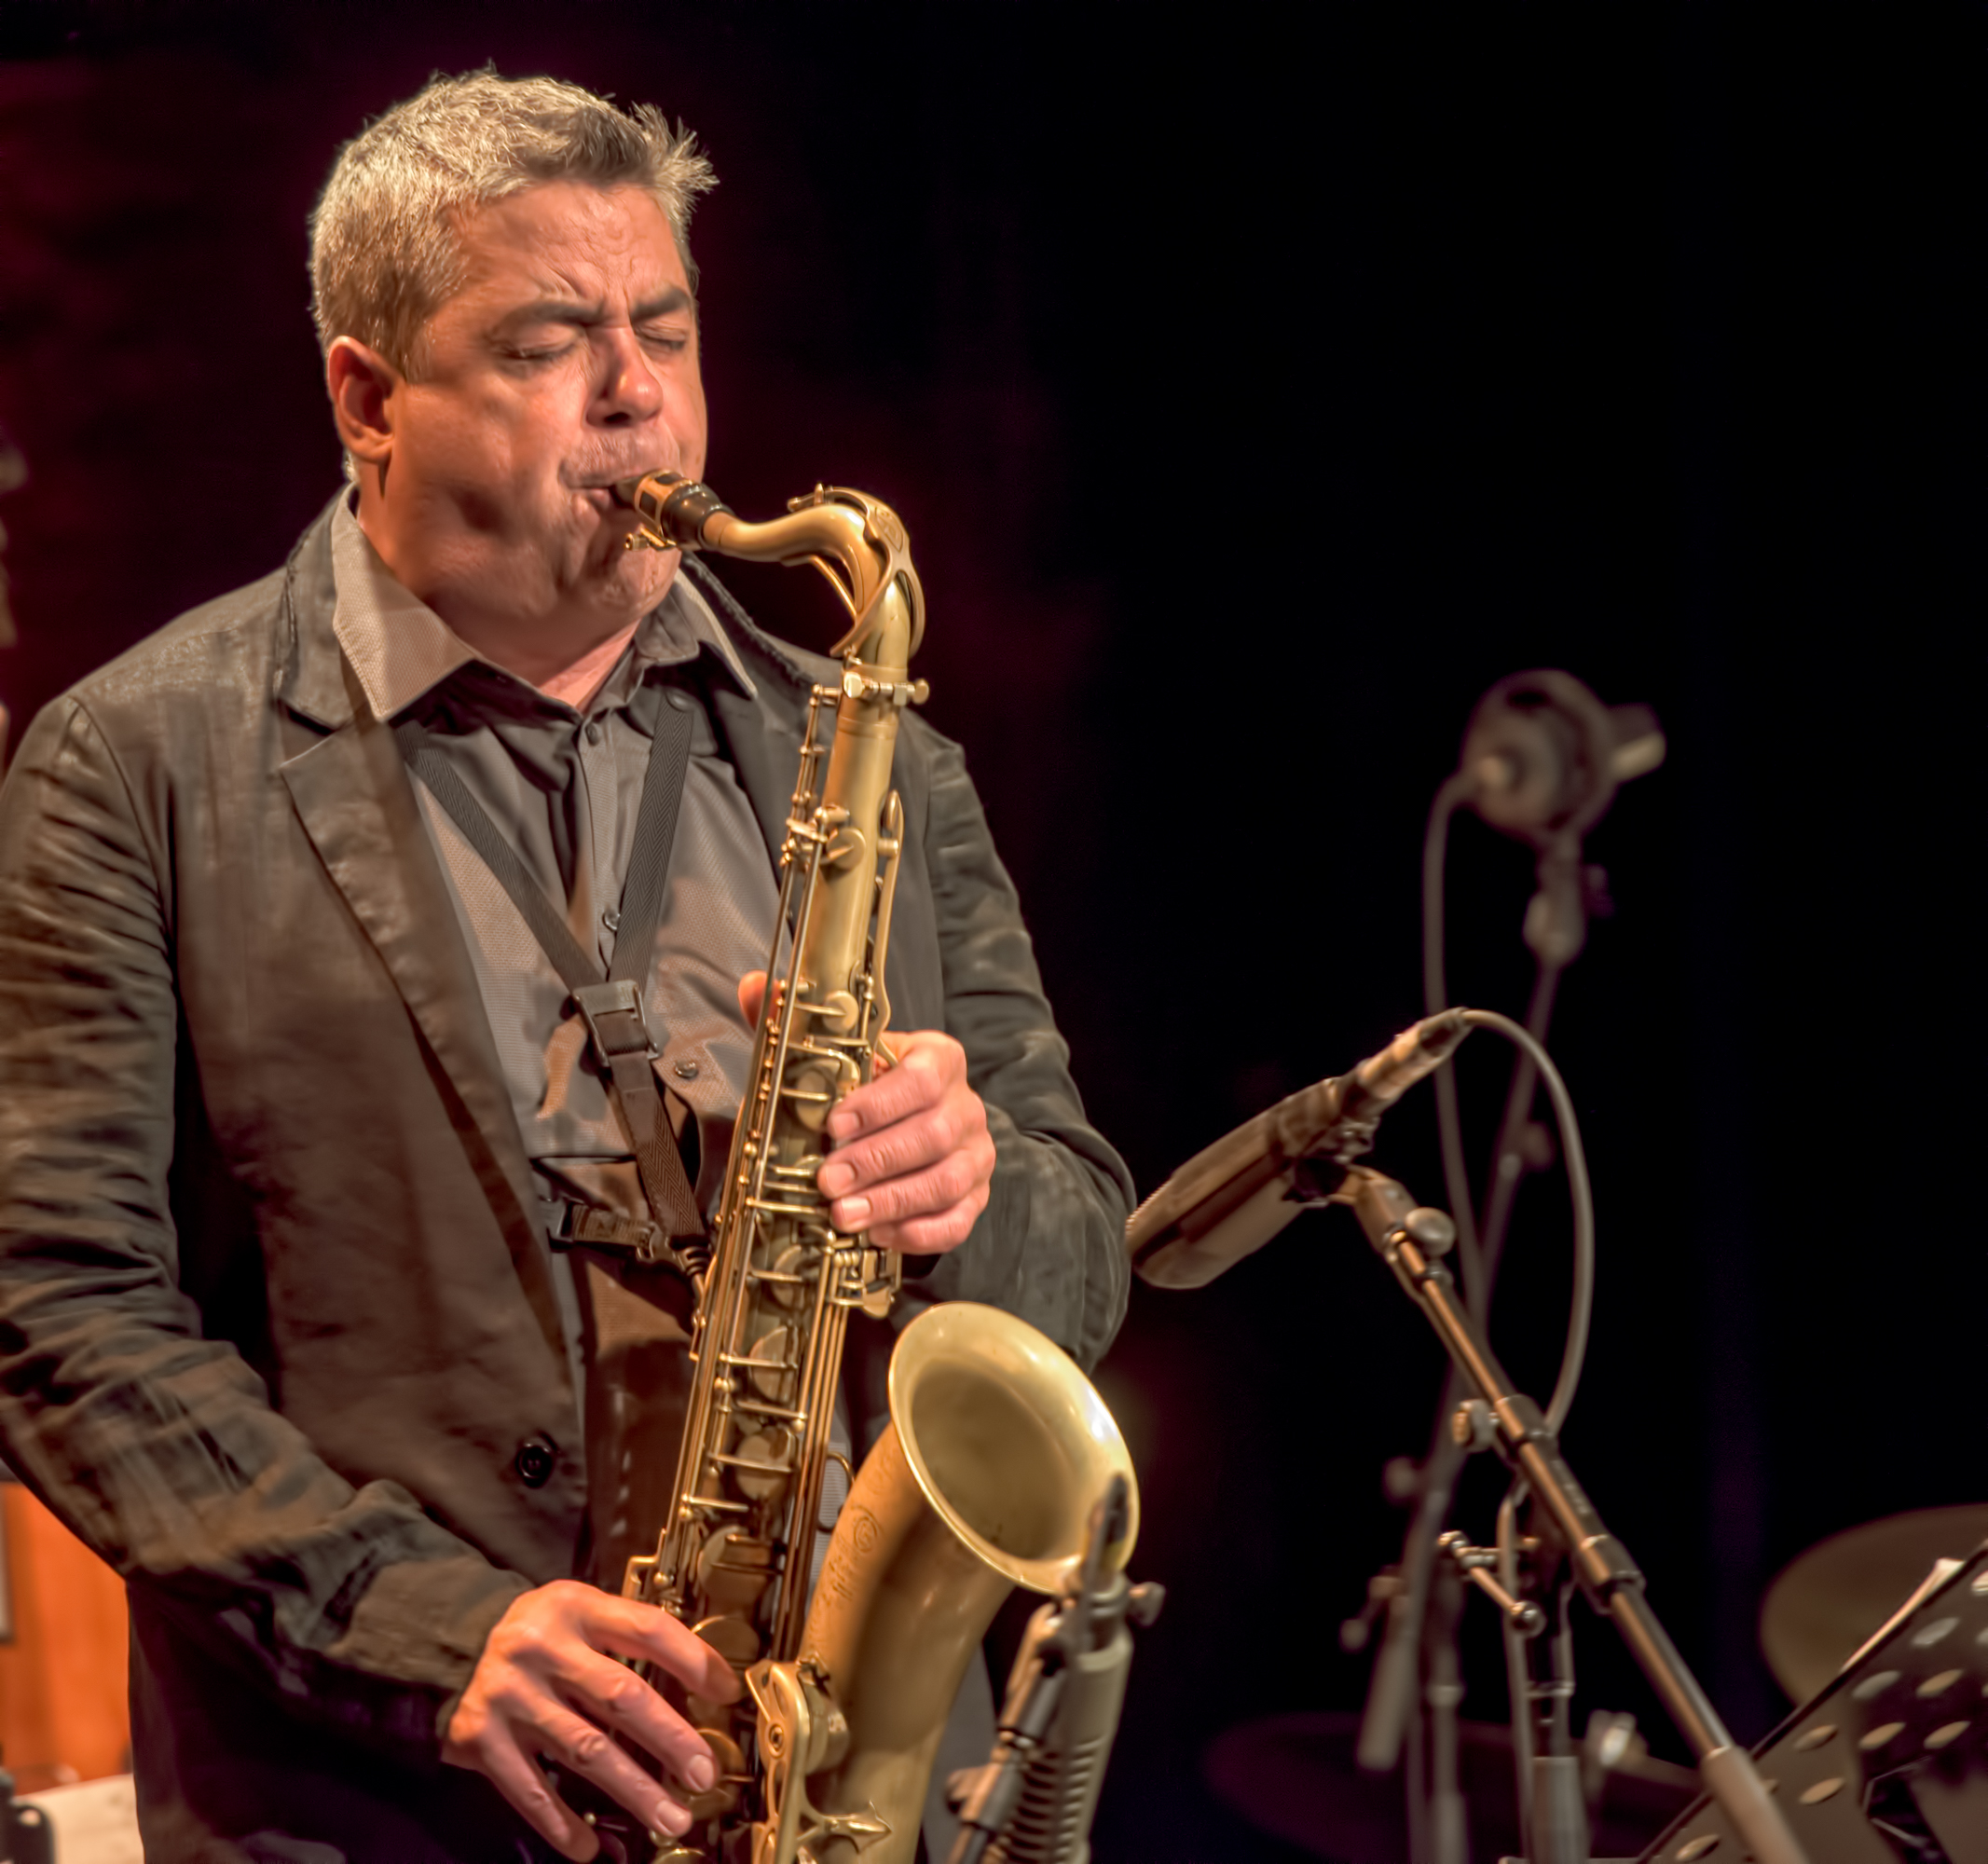 Andre Leroux at the Montreal Jazz Festival 2015